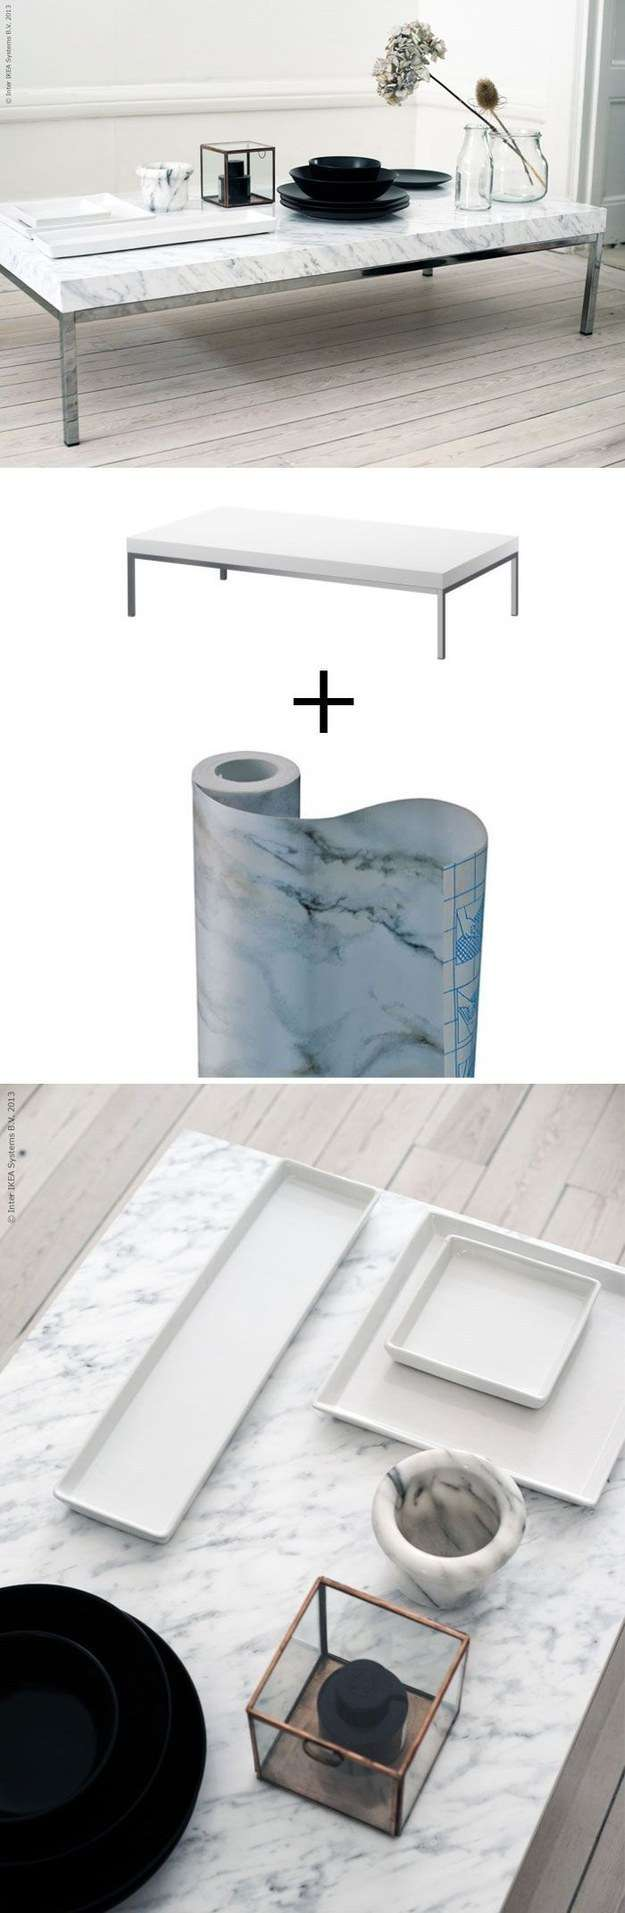 19 astuces pour rendre vos meubles ikea chics tendance for Relooker table basse ikea